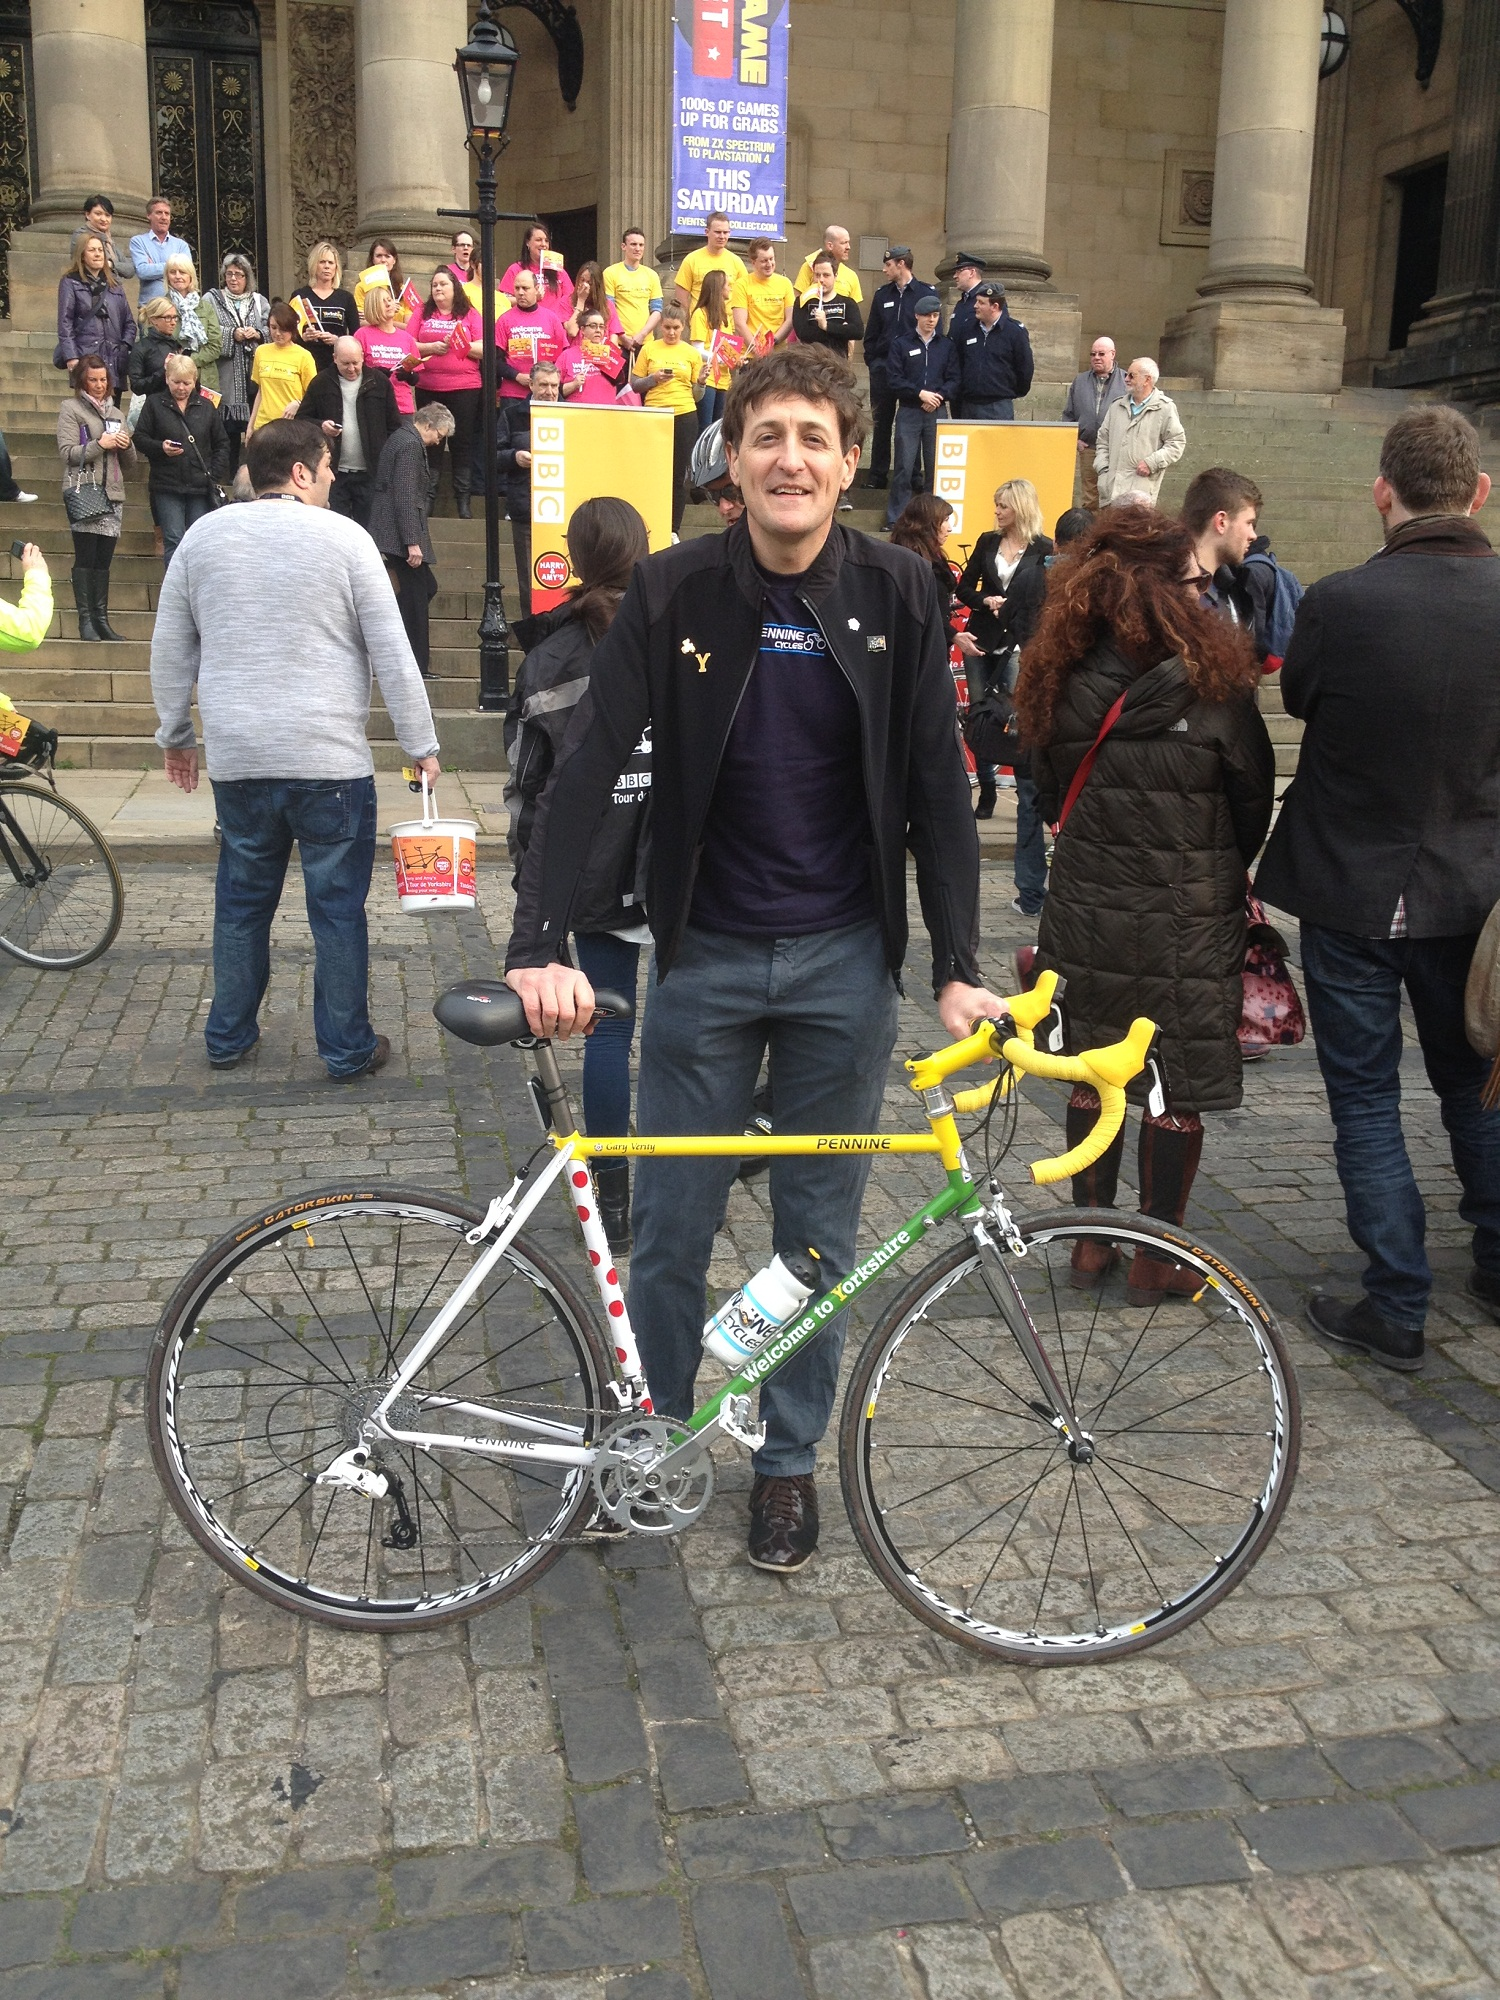 Paul Corcoran with the bike